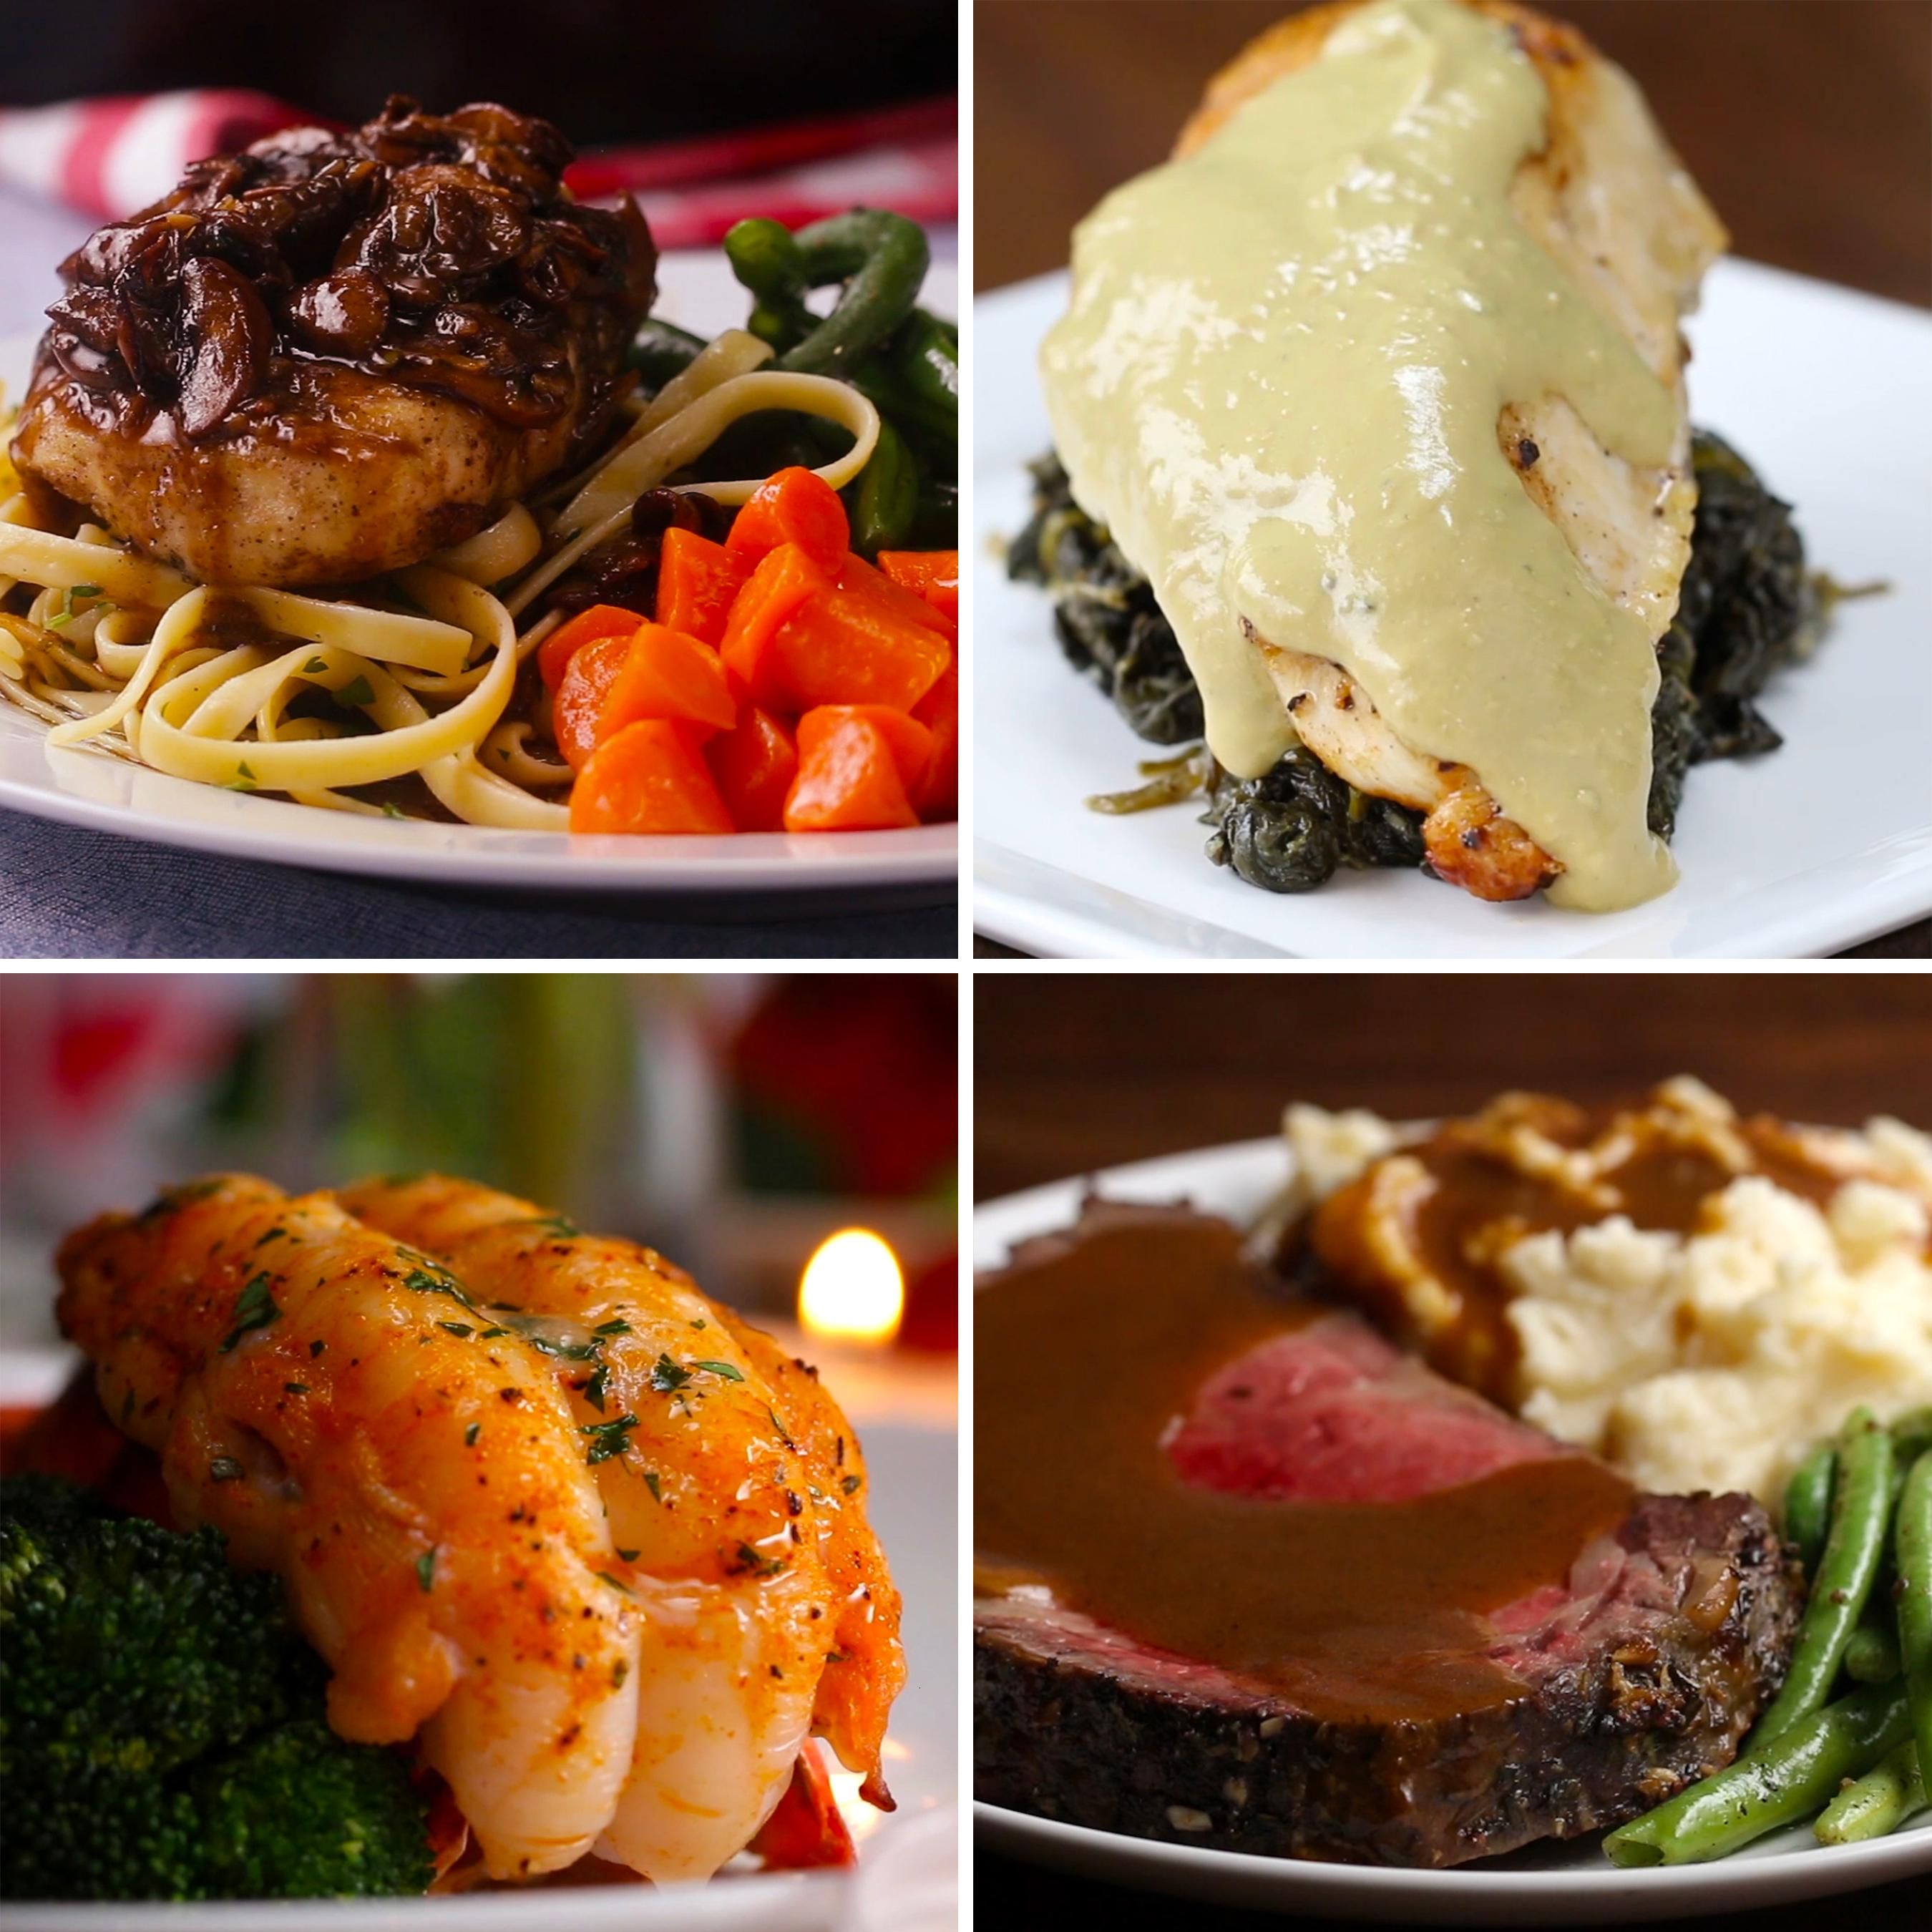 Featuring Cabernet-braised Short Ribs, Puff Pastry Salmon